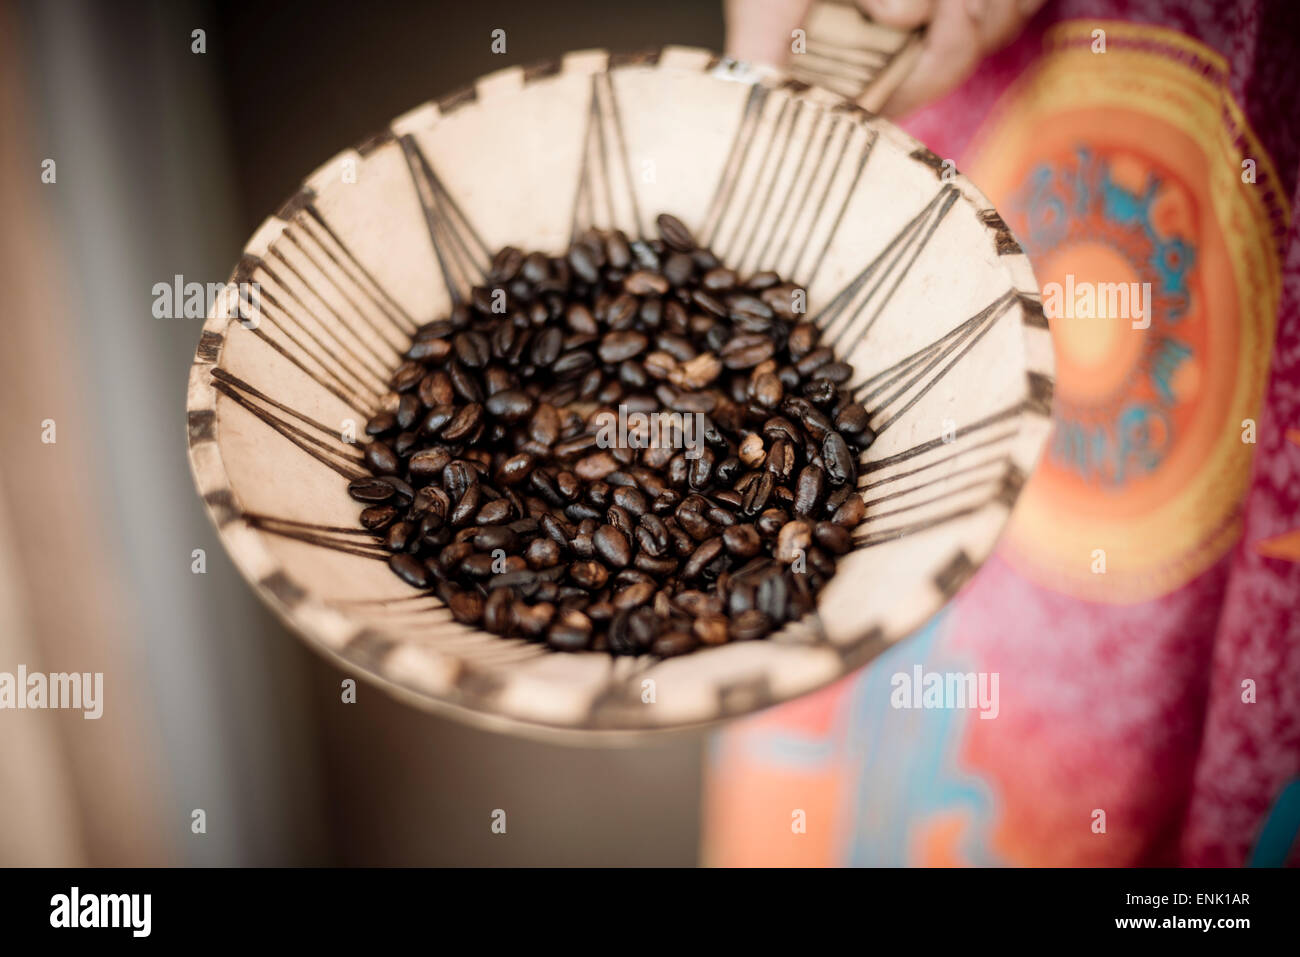 Coffee beans, Omo Valley, Ethiopia, Africa - Stock Image